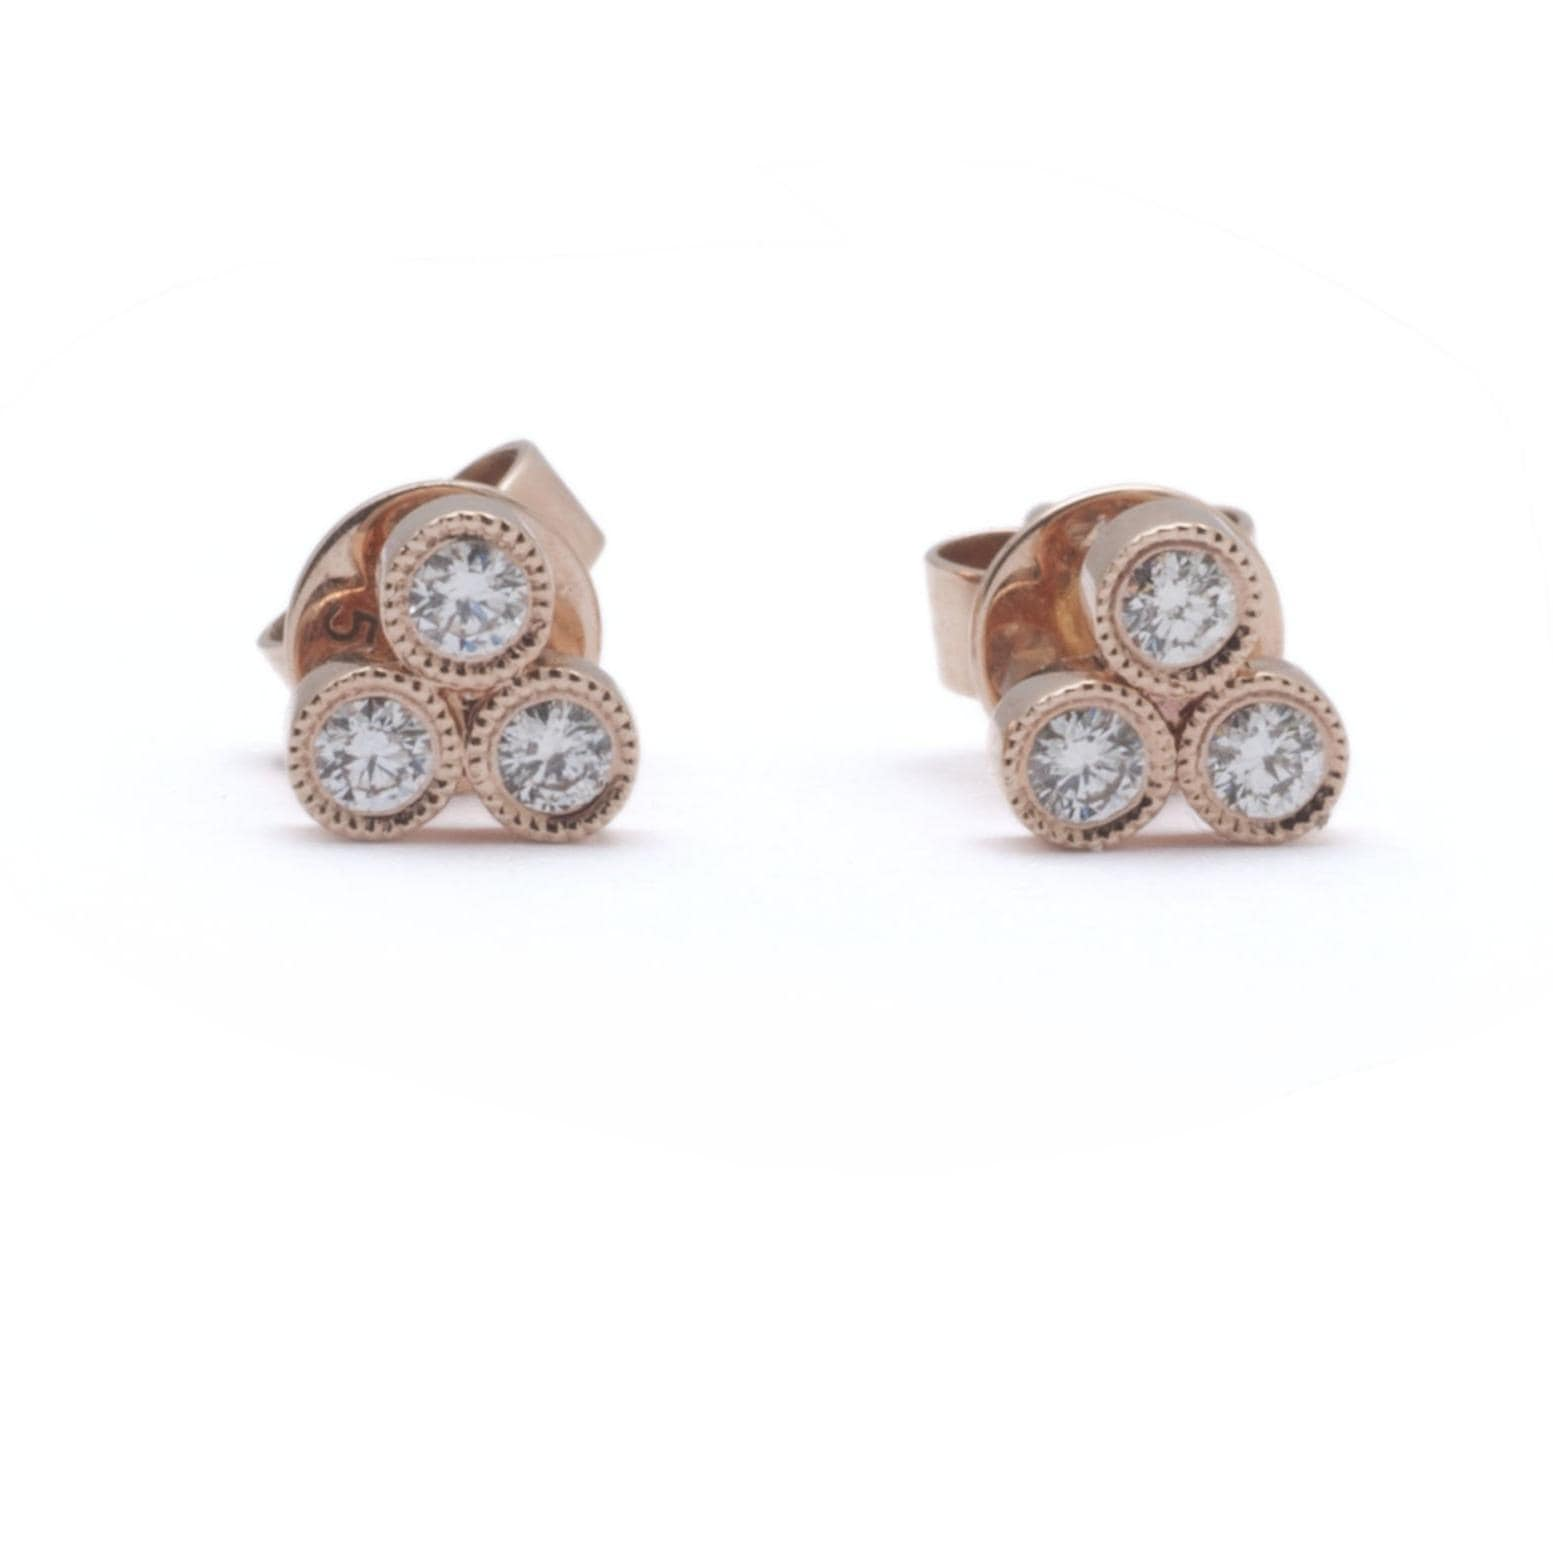 hand stud blingtastic studs brown products earring vintage cut earrings fetheray diamond